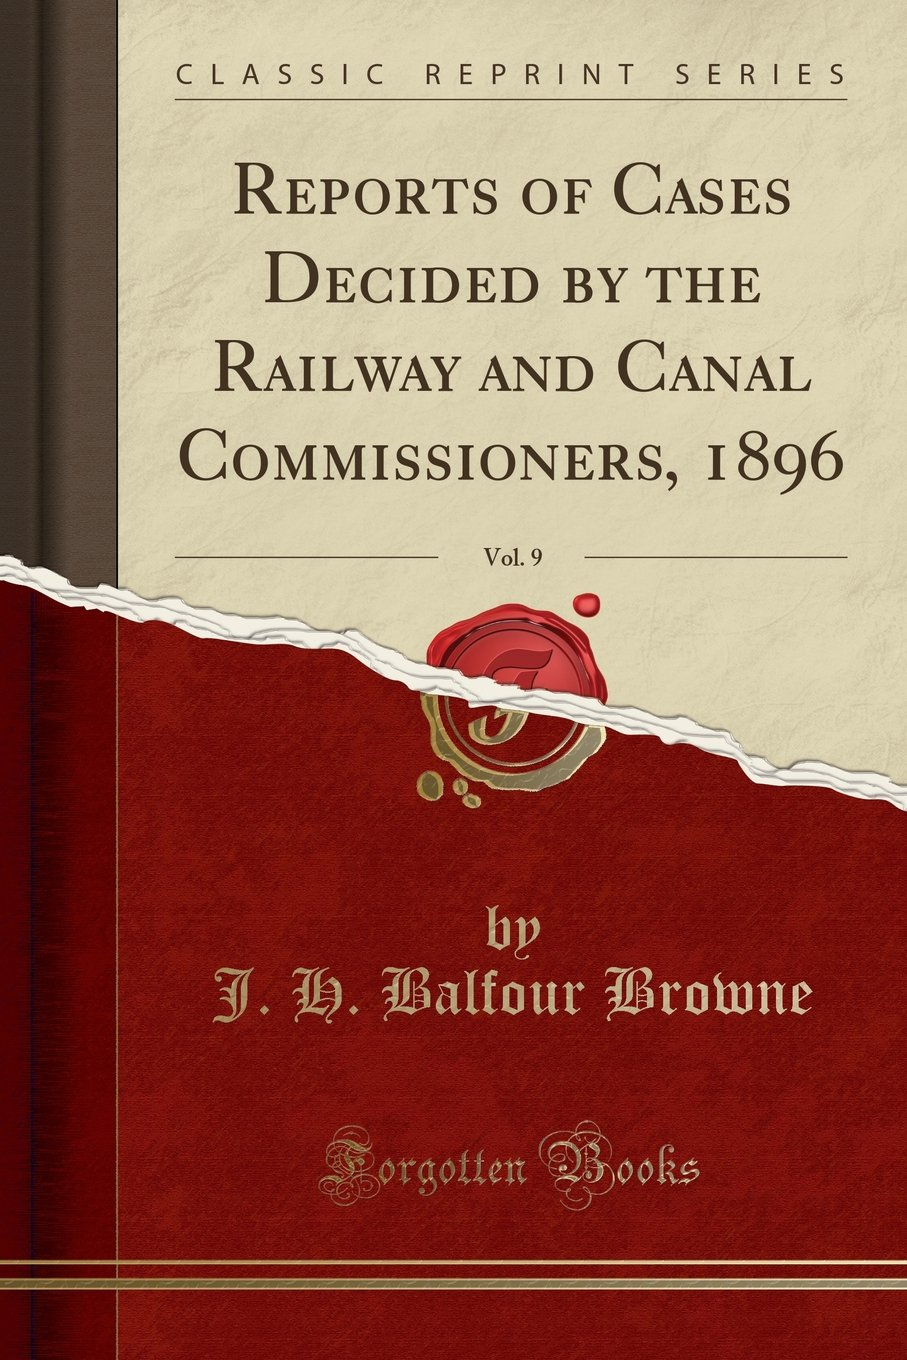 Reports of Cases Decided by the Railway and Canal Commissioners, 1896, Vol. 9 (Classic Reprint) ebook